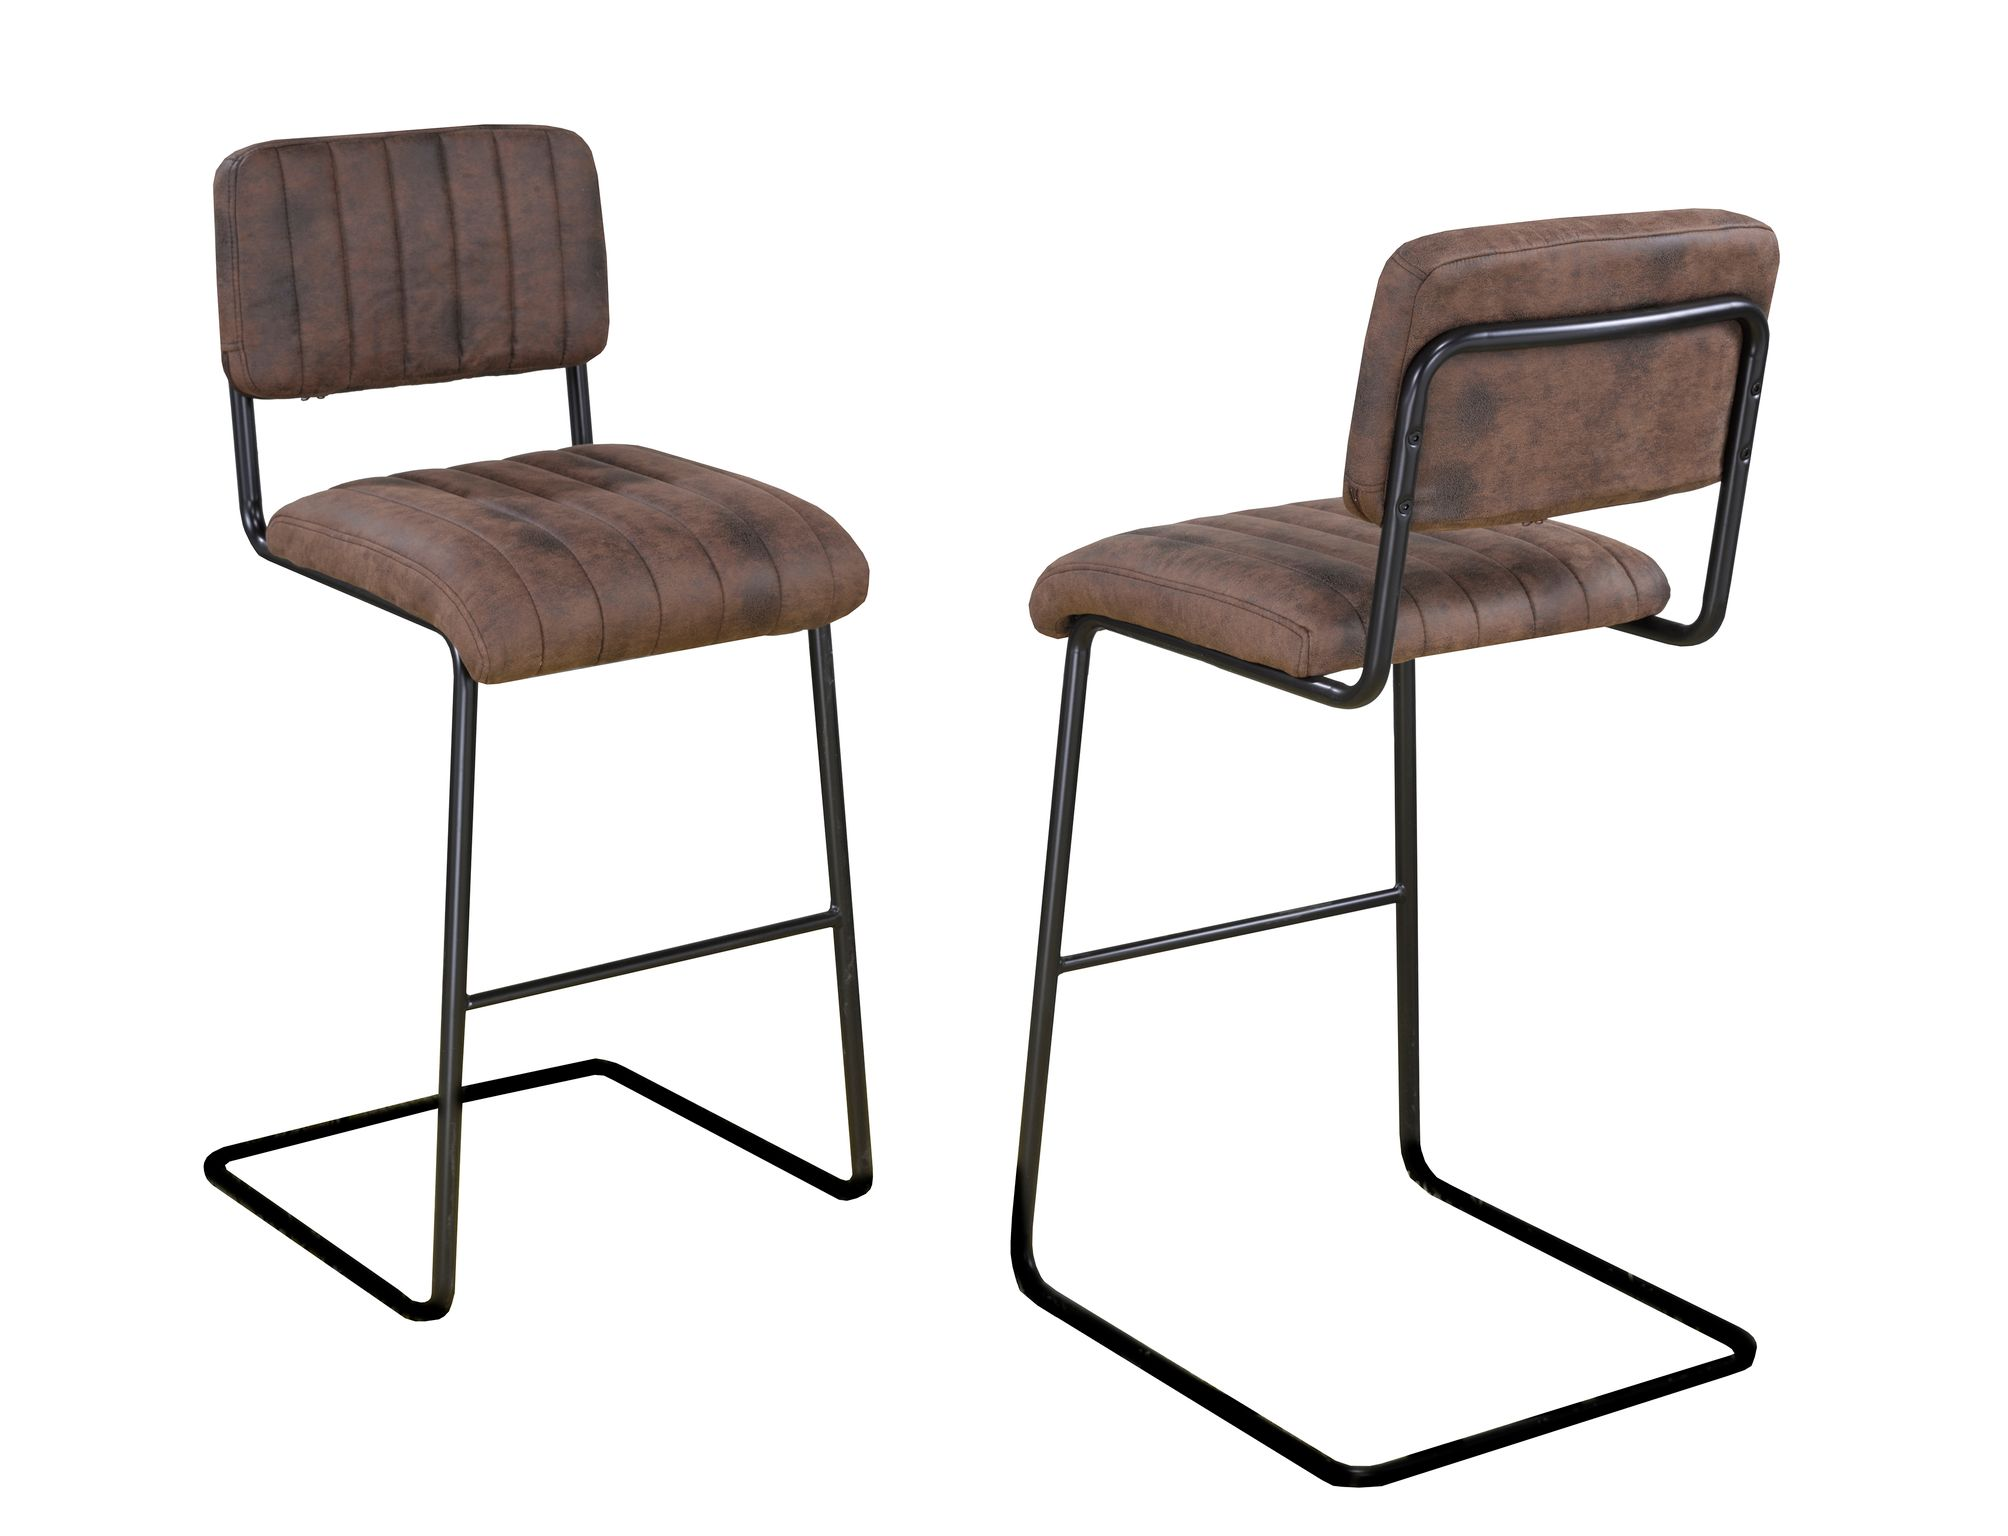 COUNTER STOOL SET OF 2, BROWN